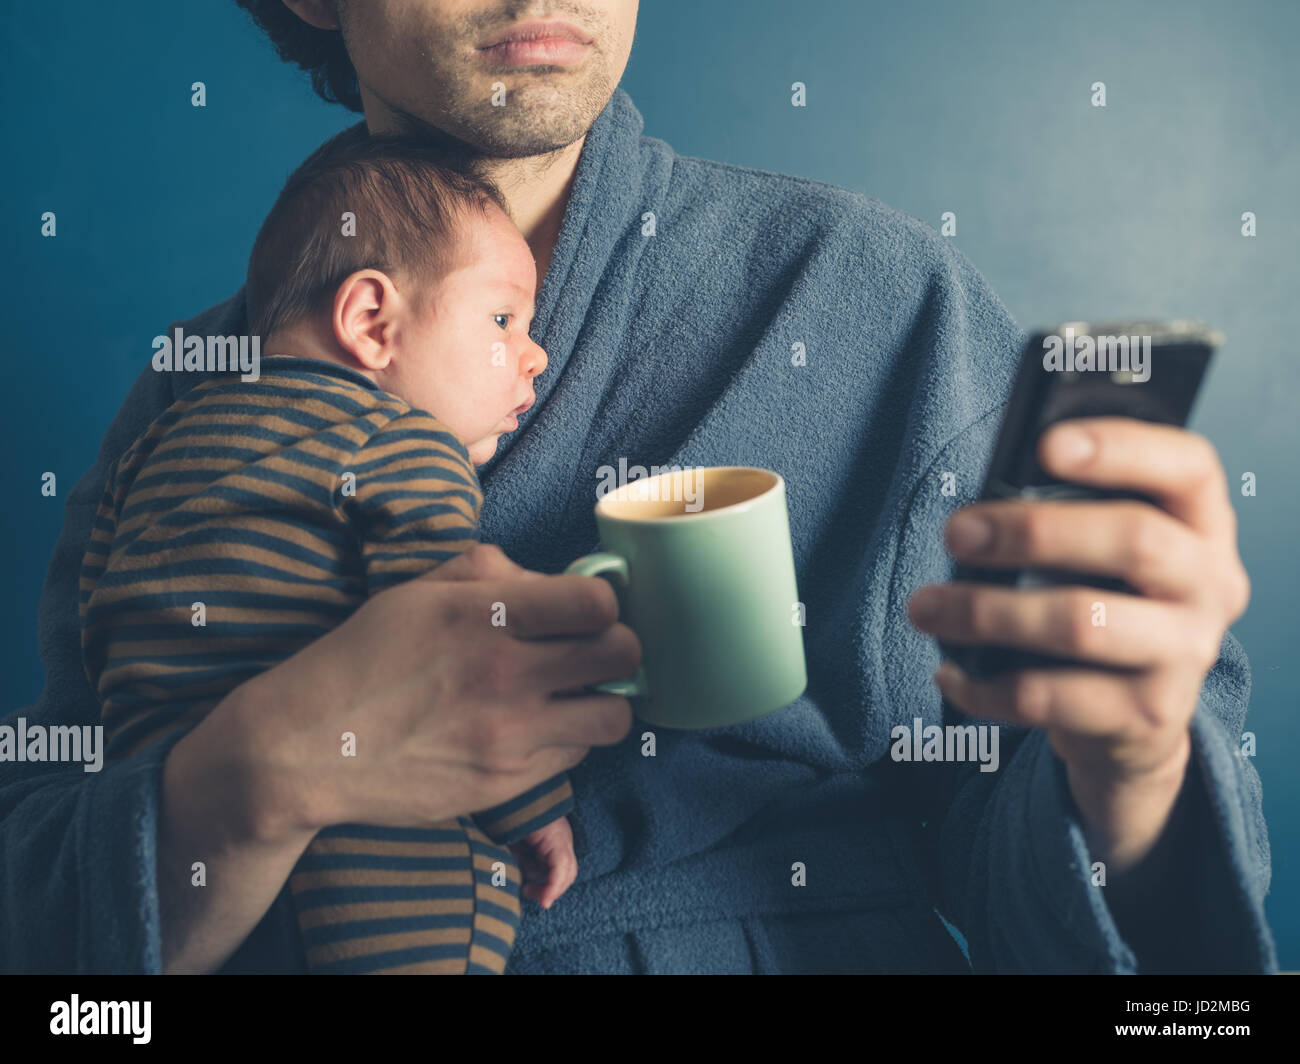 A young father in a bathrobe is using a smartphone whilst holding a mug and his baby son - Stock Image